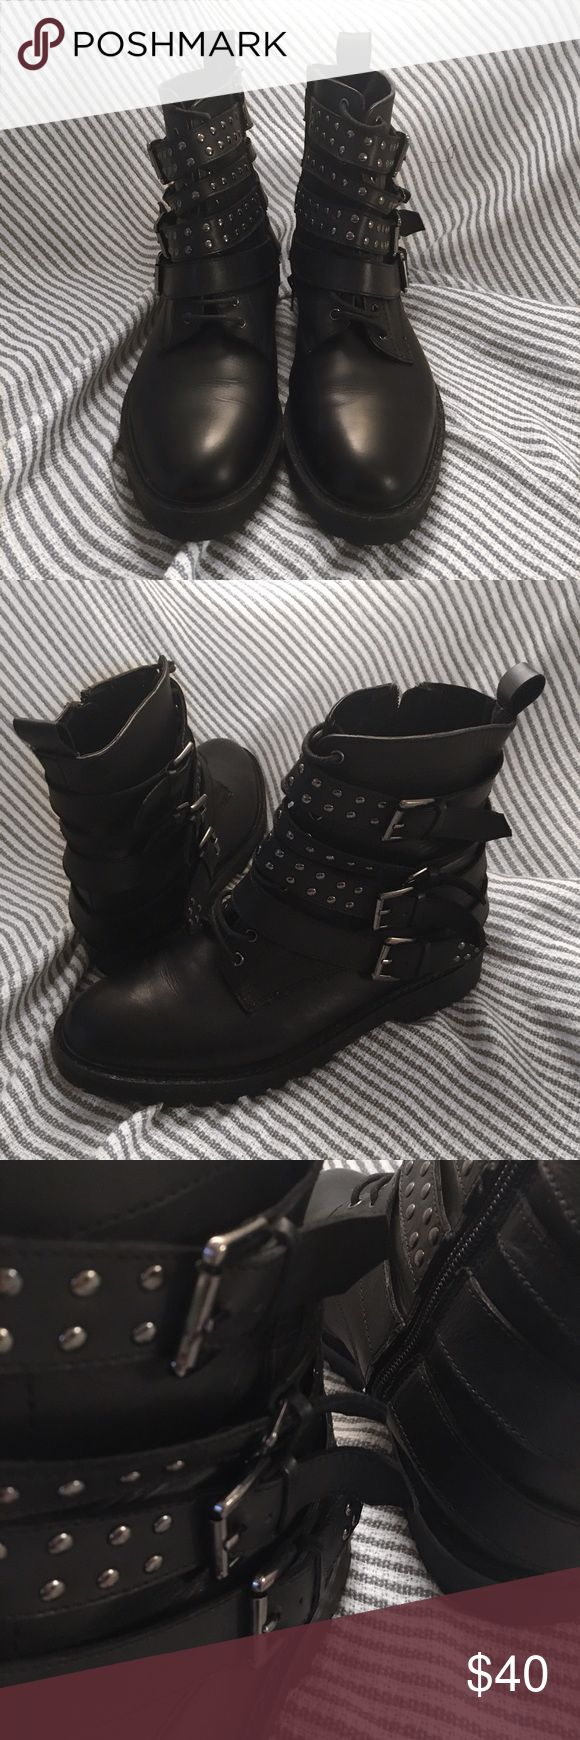 TOPSHOP SHOES. TOPSHOP shoes in a really good condition. I have only worn them few times. Make offers. Topshop Shoes Ankle Boots & Booties